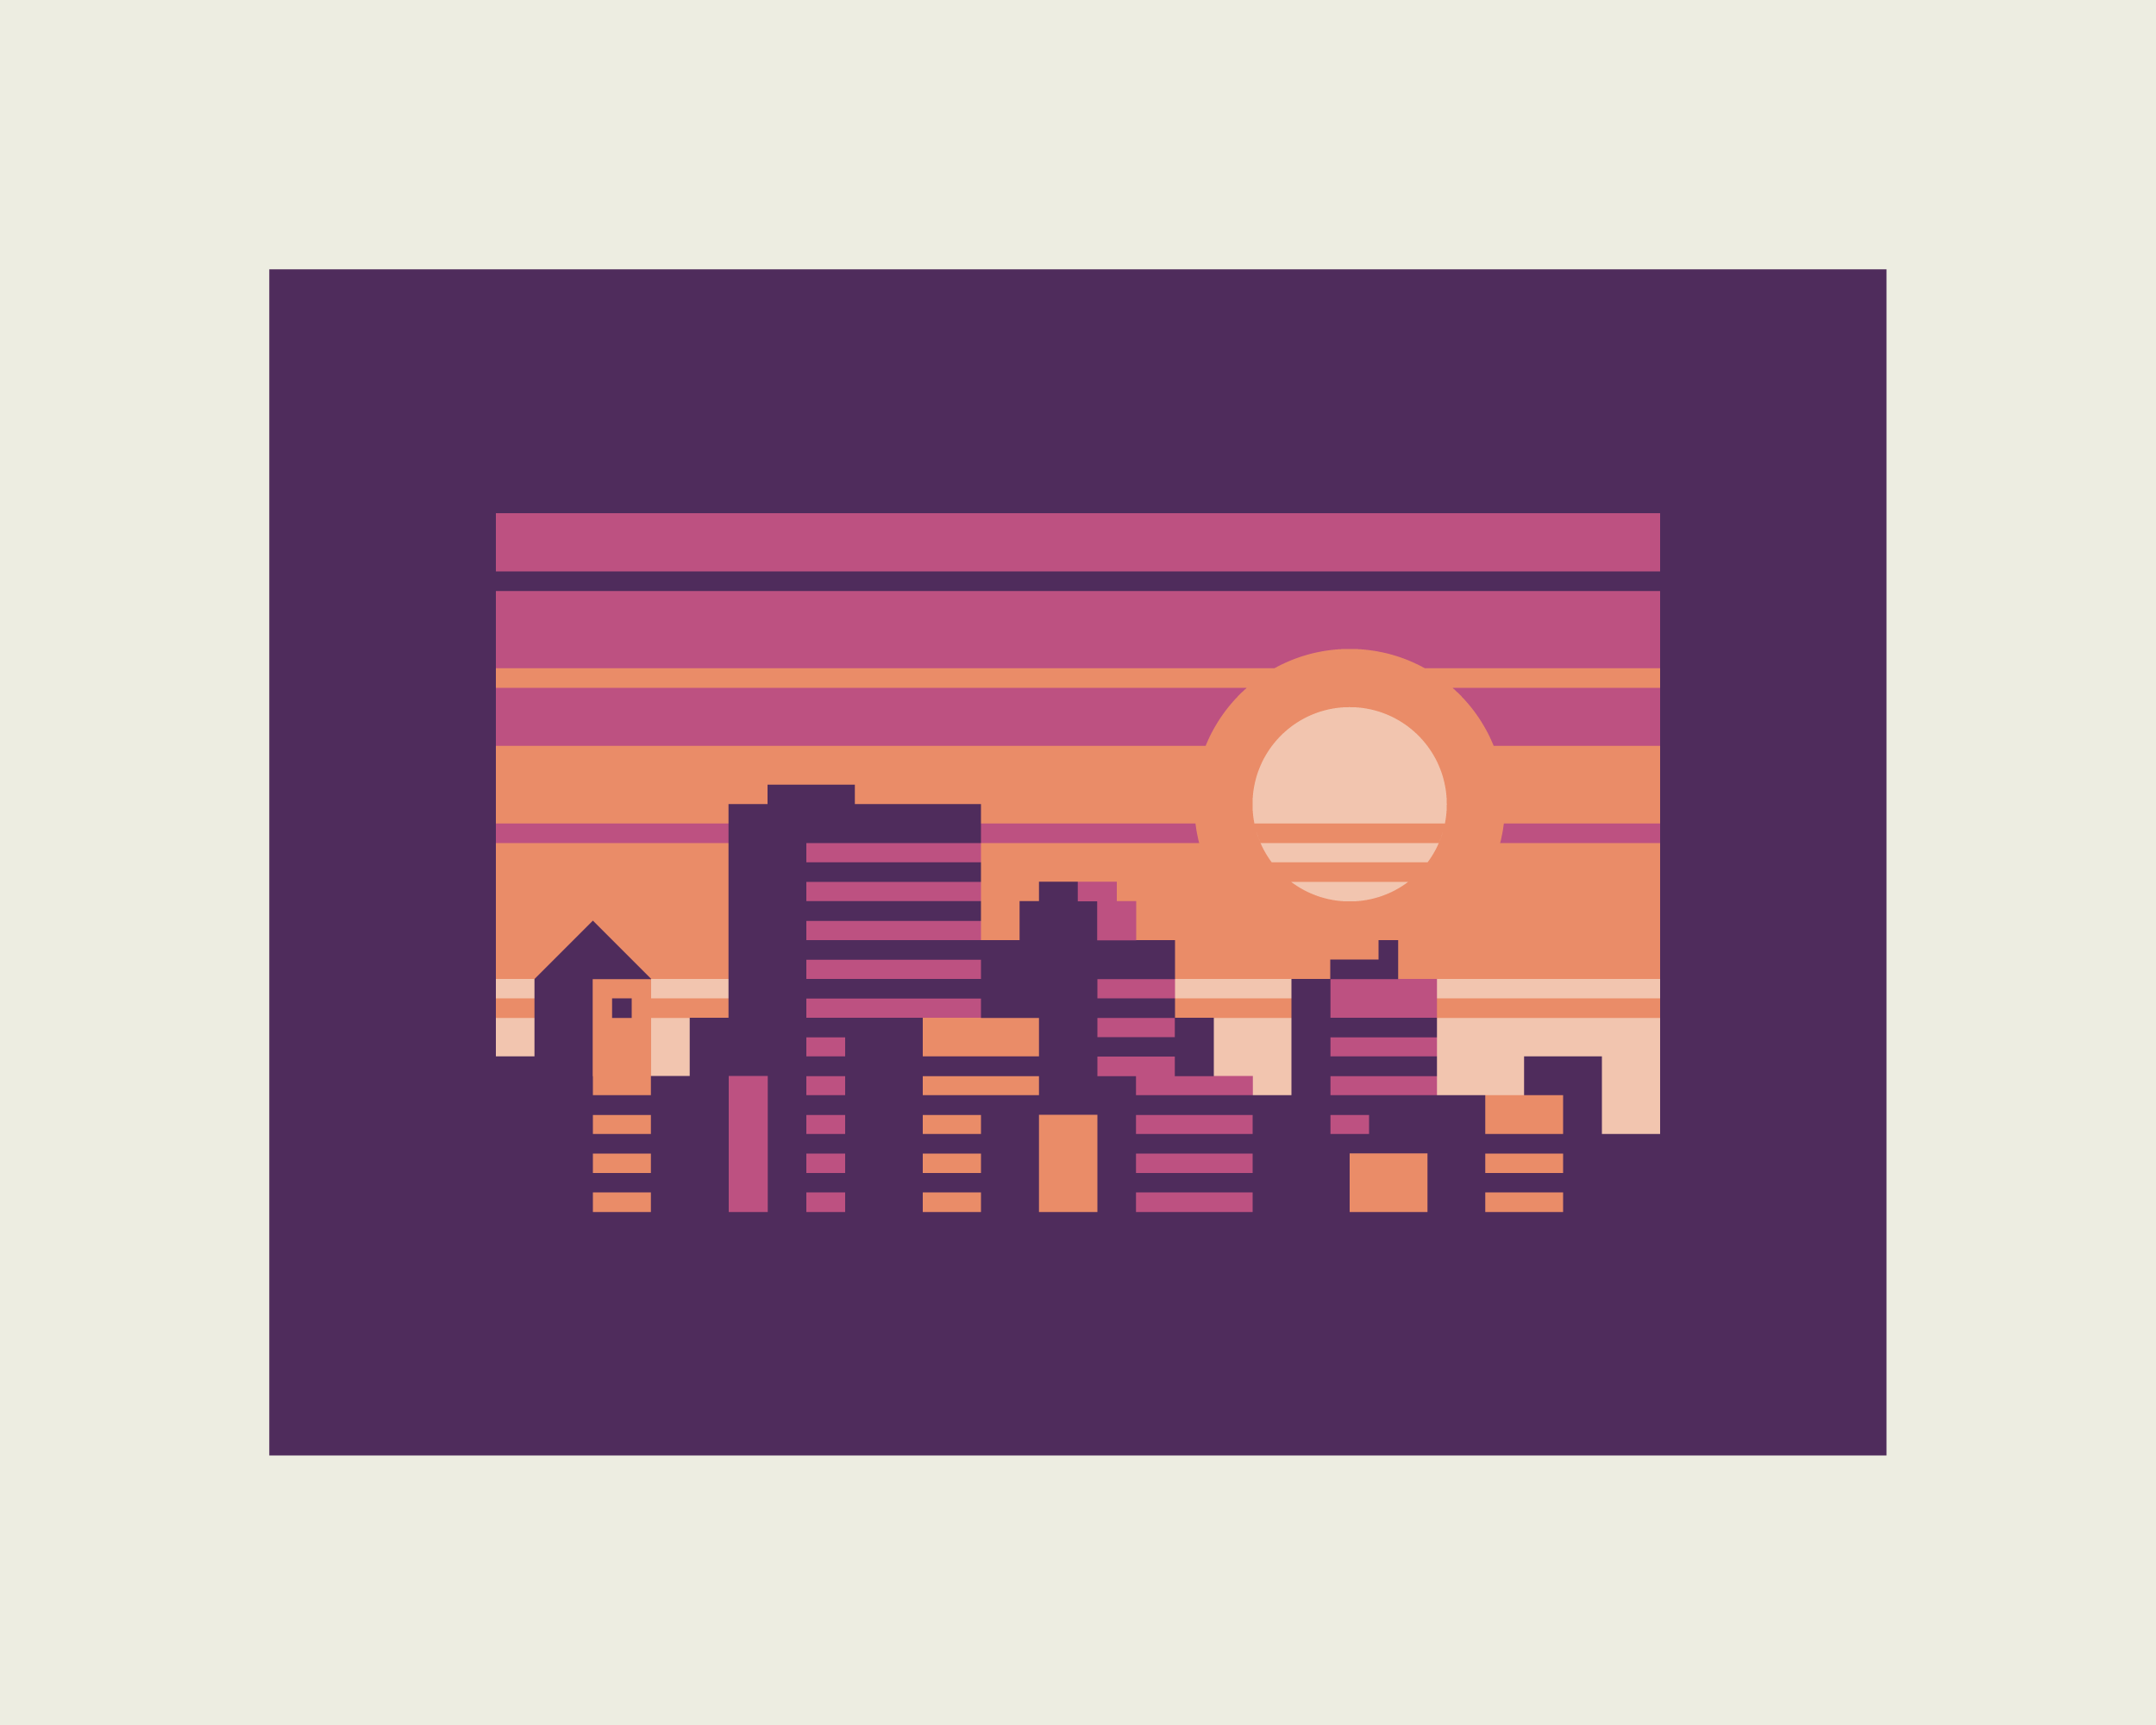 Amber Cities: Ametrine design by Matt Anderson and Canopy Design. Limited color, geometric city skyline.